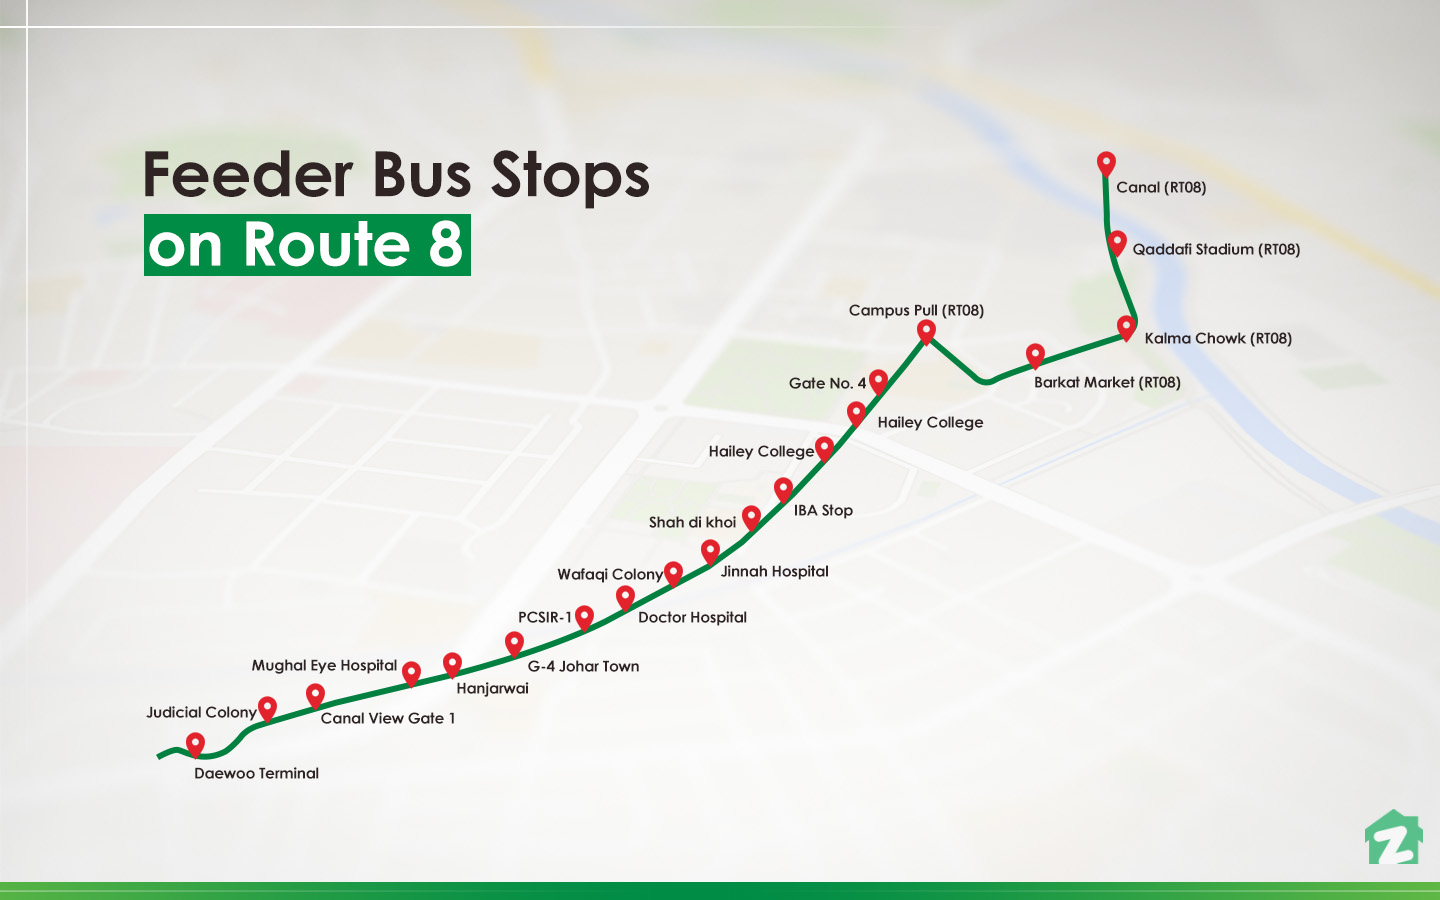 Block G of Johar Town boasts one of the bus stops for feeder buses.